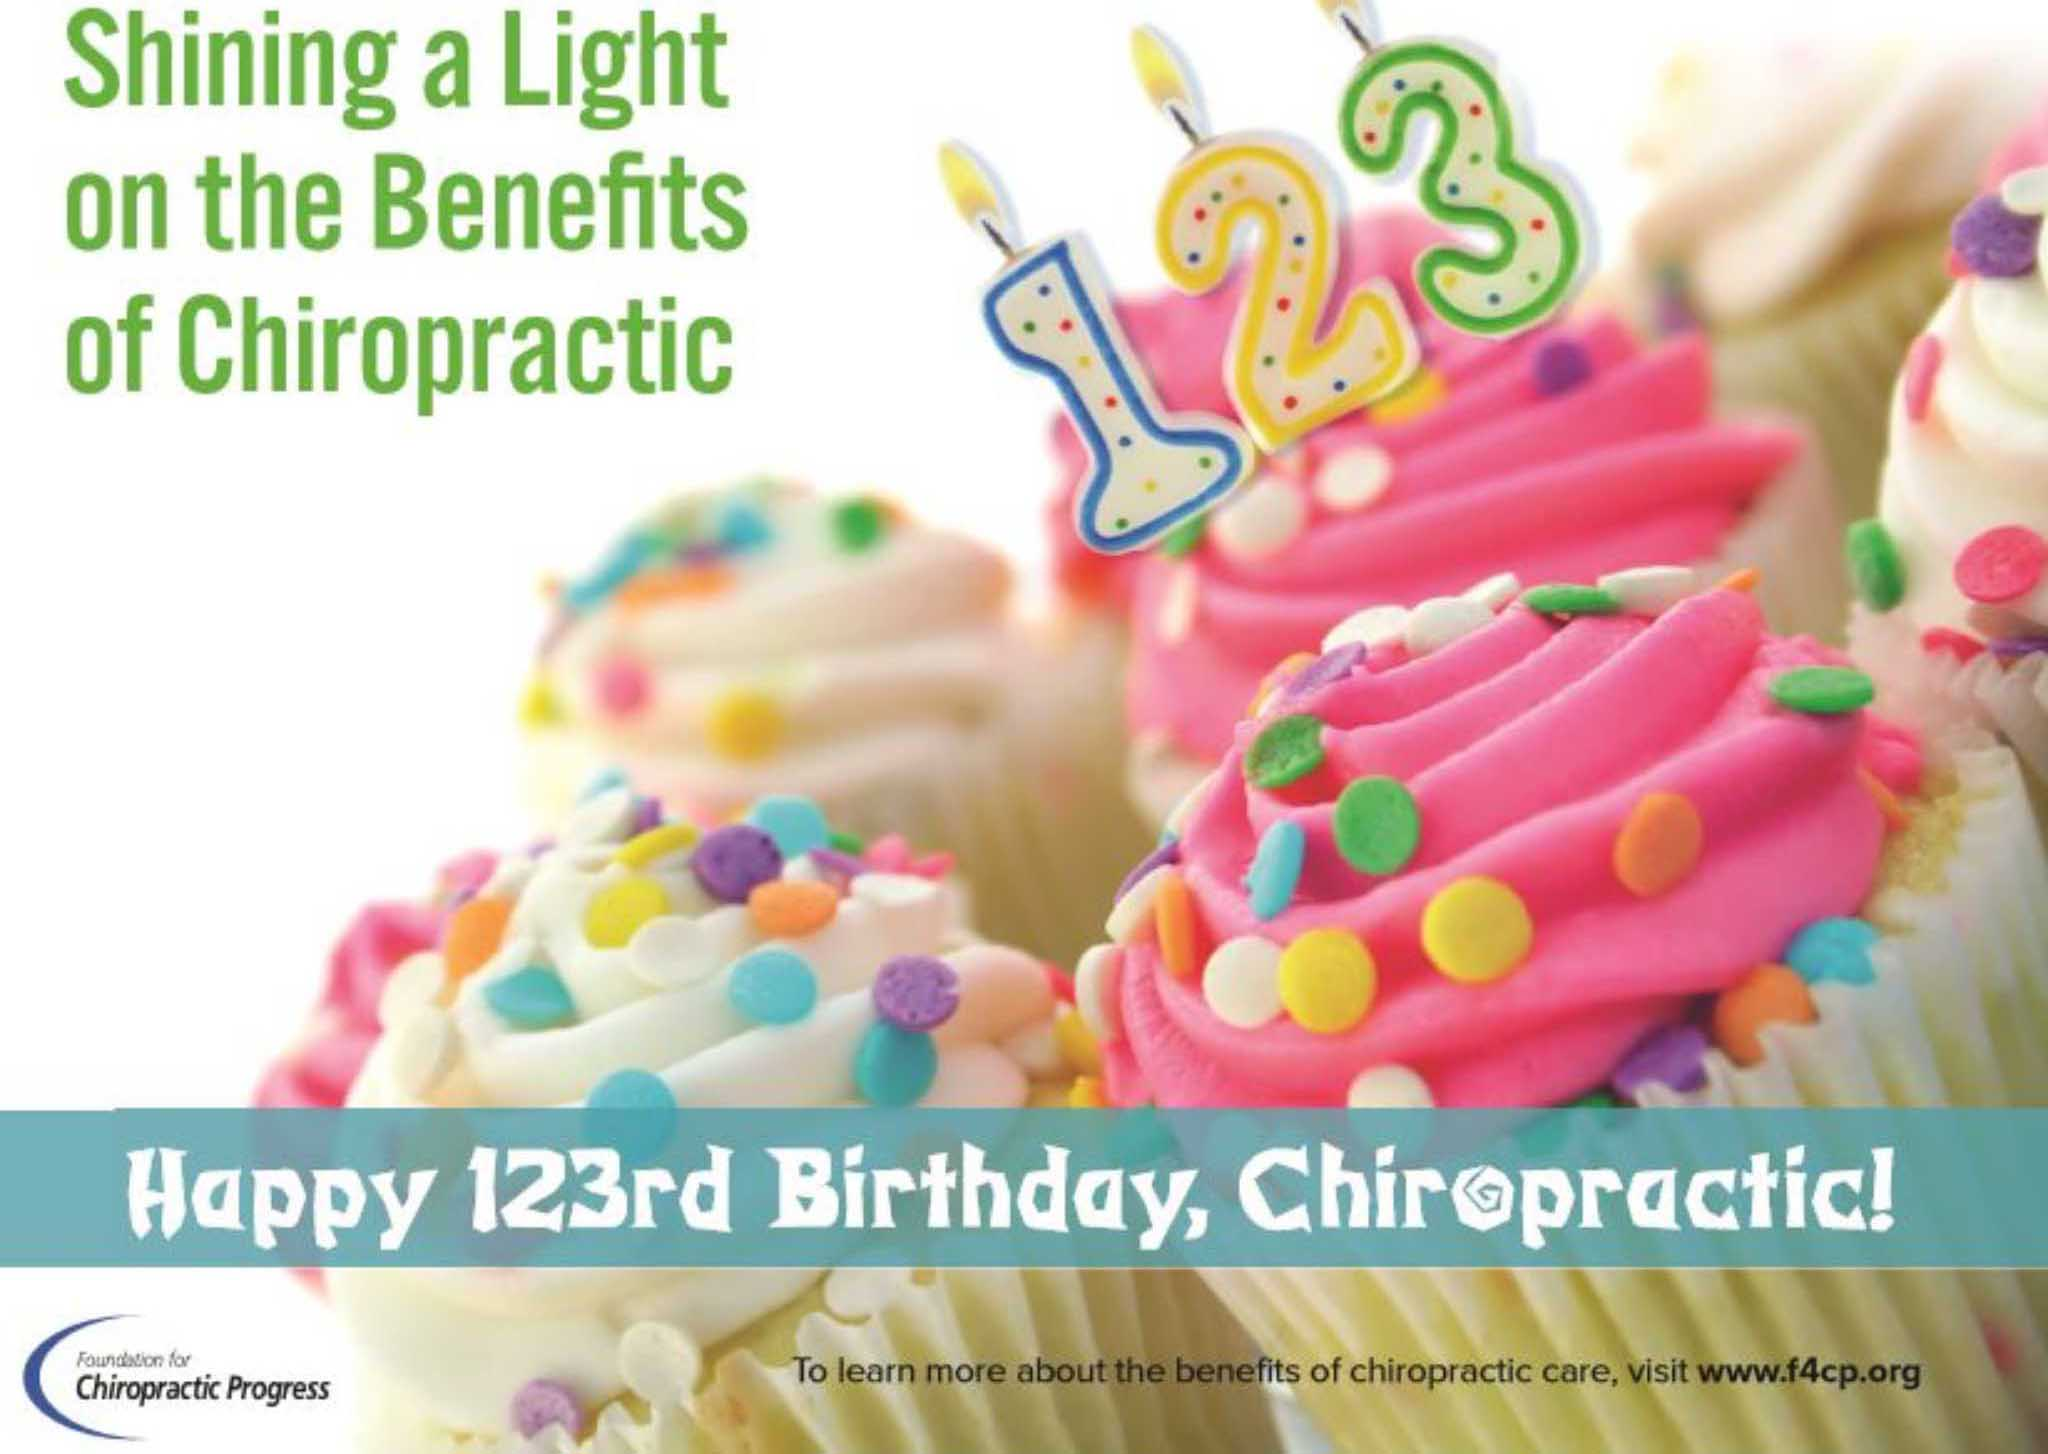 Shining a light on Benefits of Chiropractic